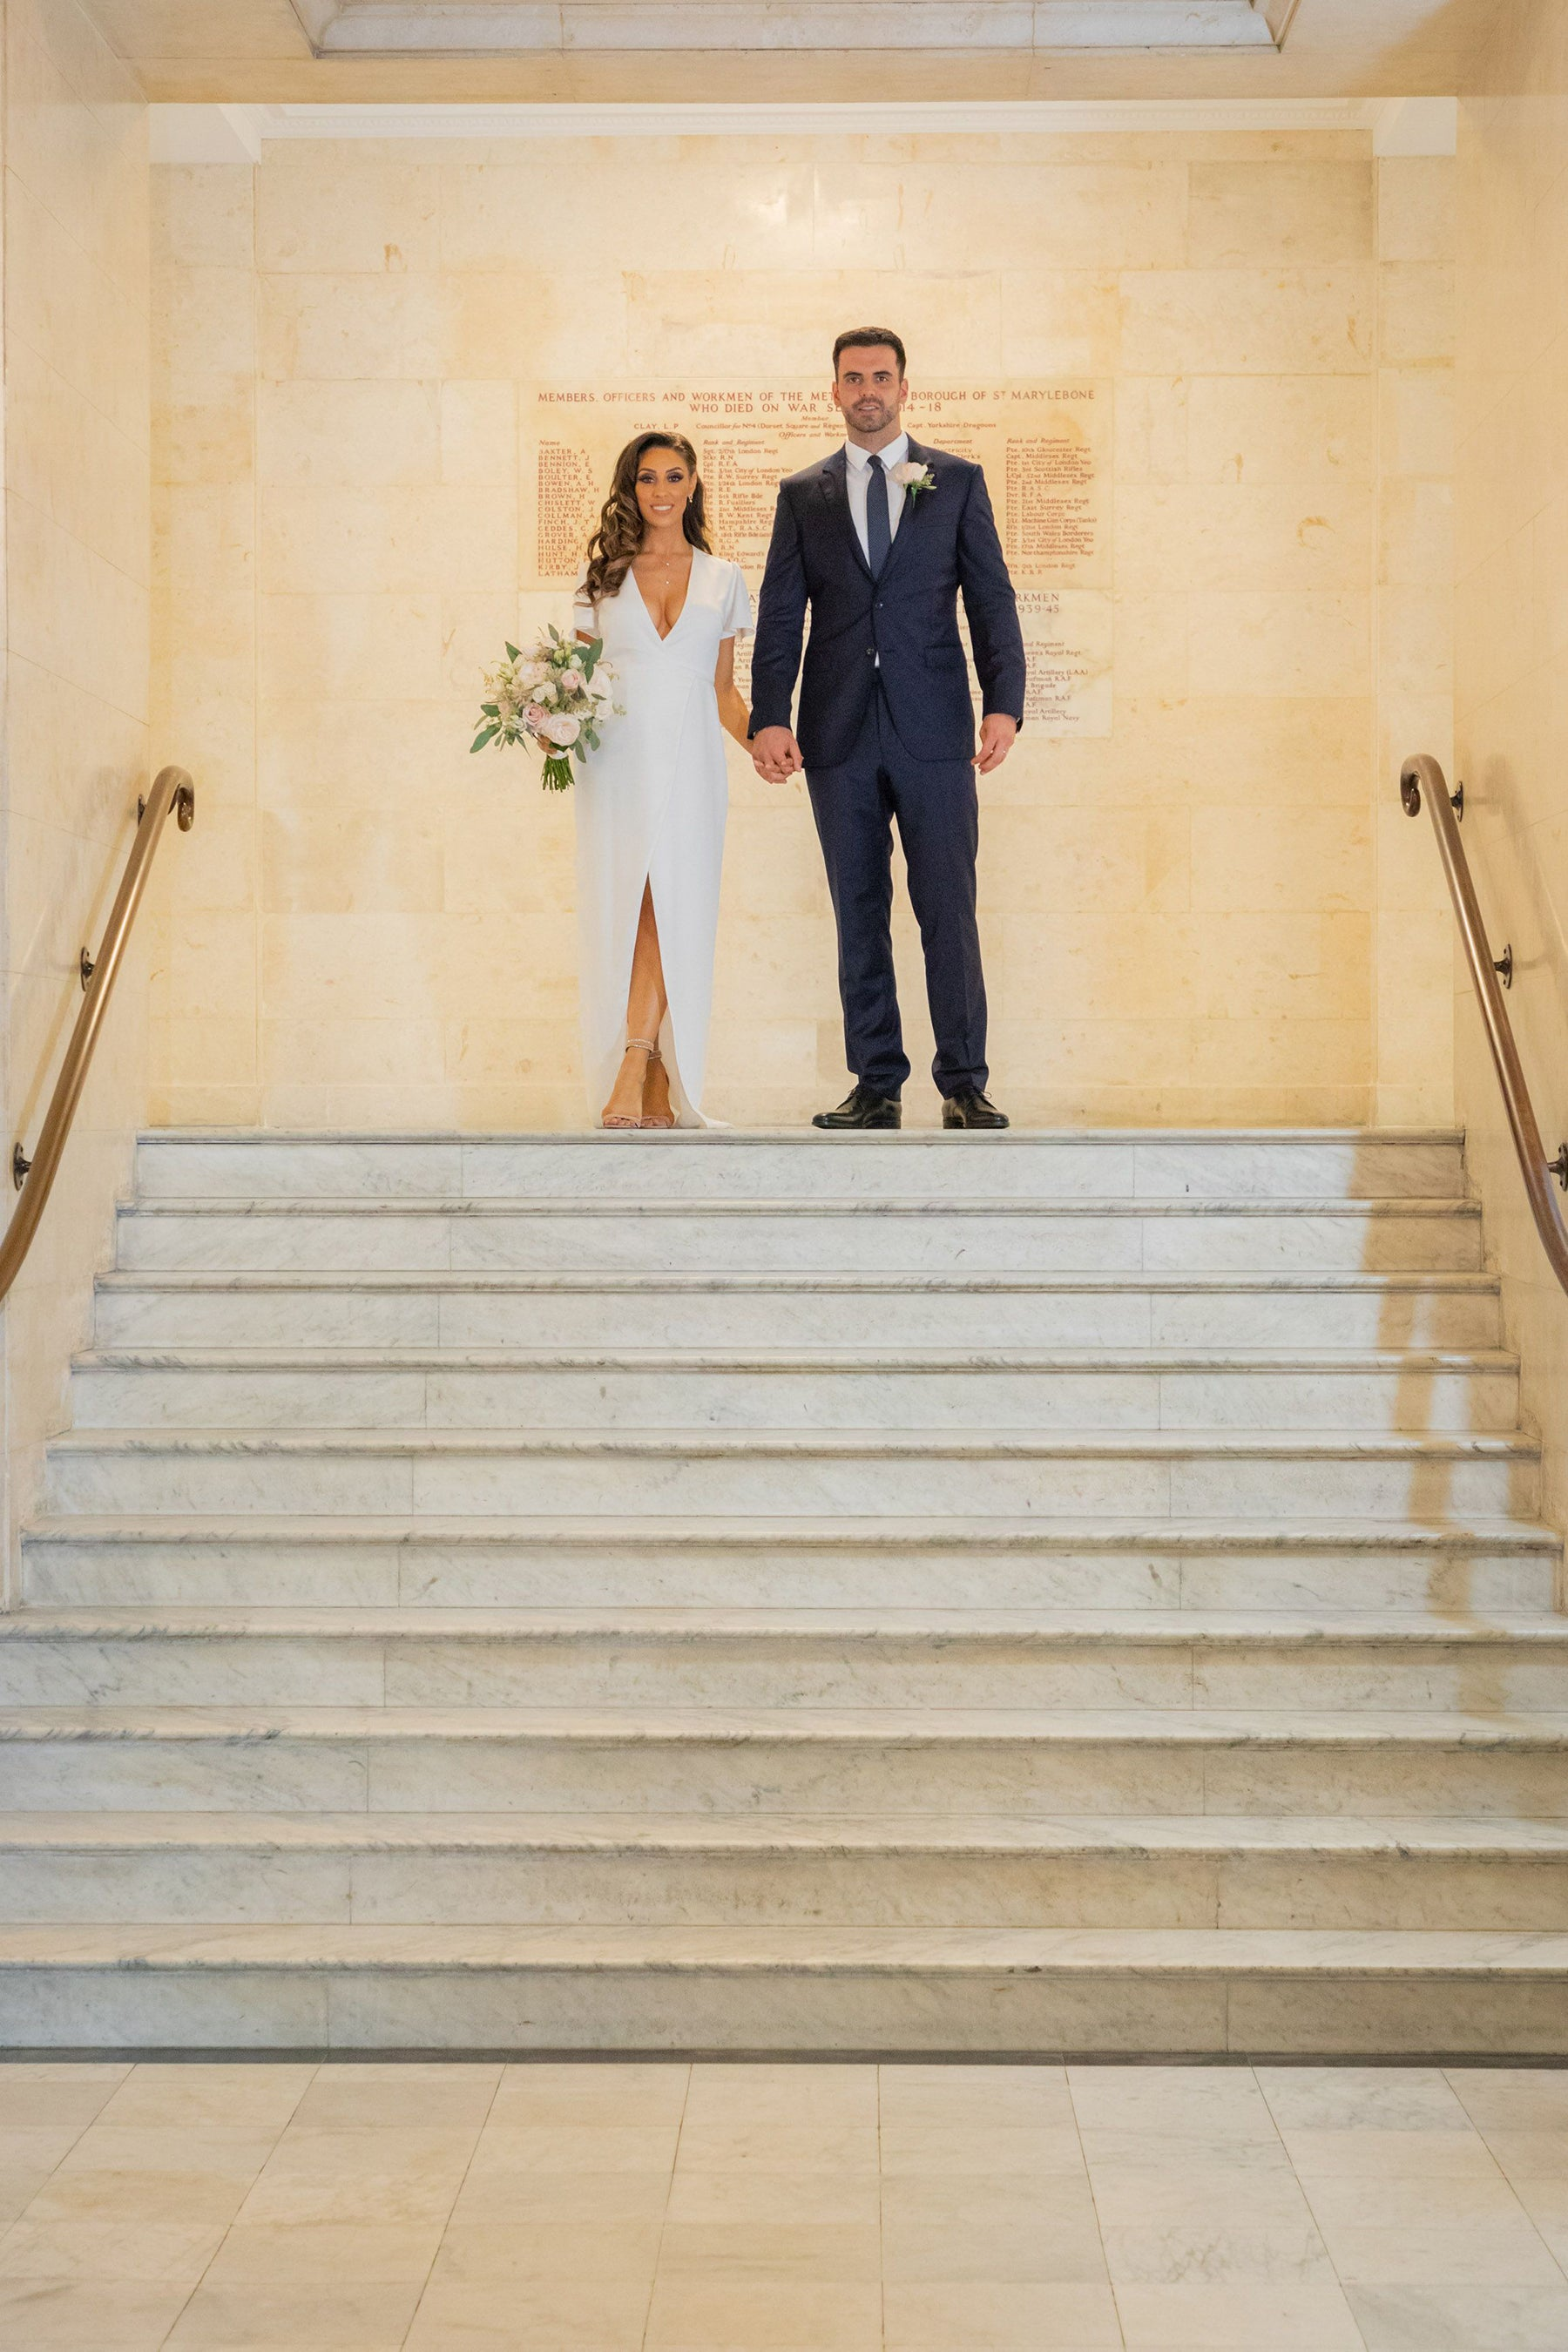 Bride Jessica in our Esmee Wedding Dress at her registry office wedding at Old Marylebone Town Hall